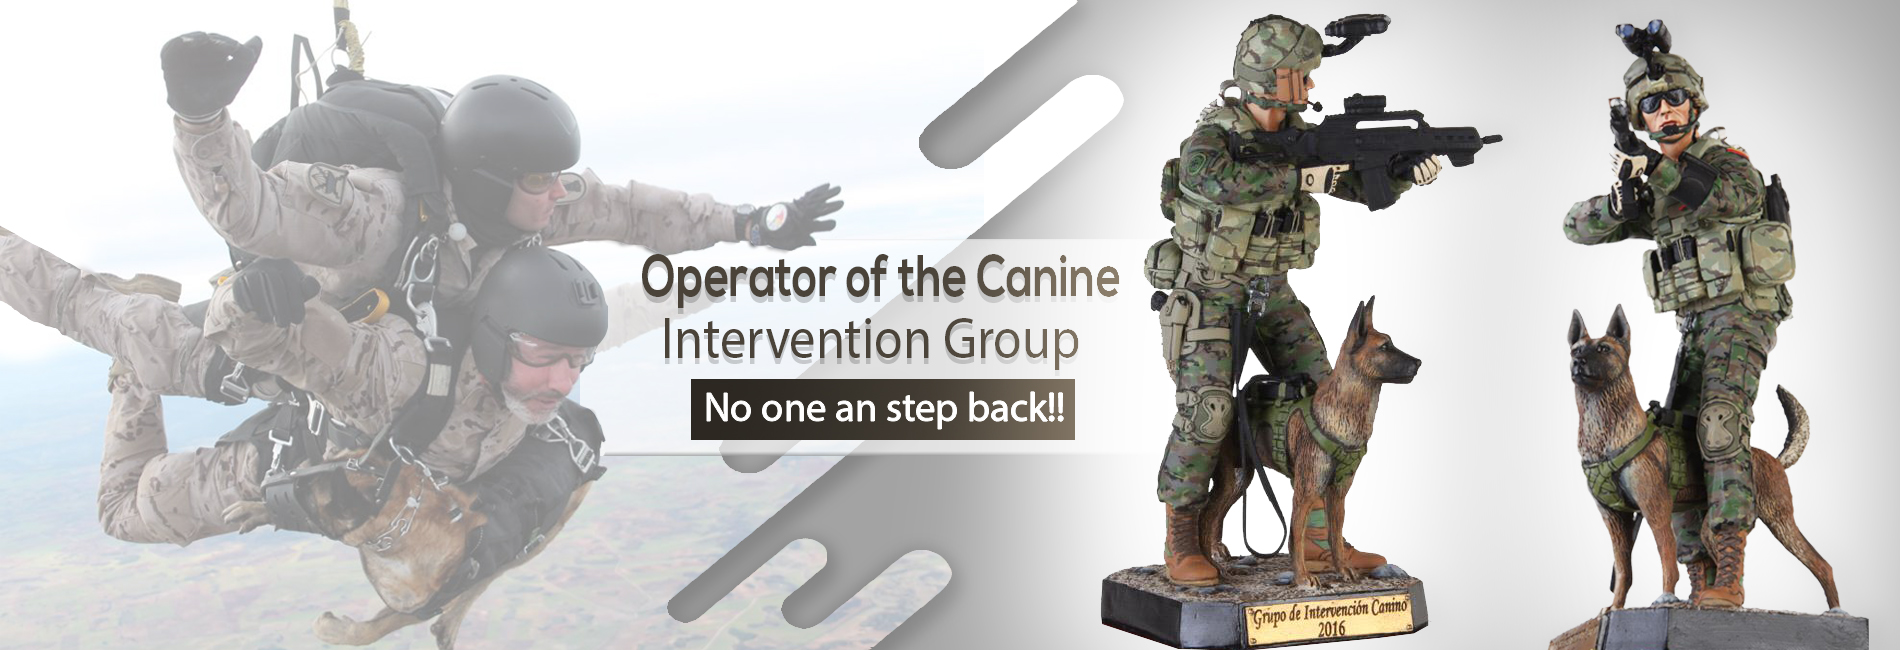 Canine Intervention Group